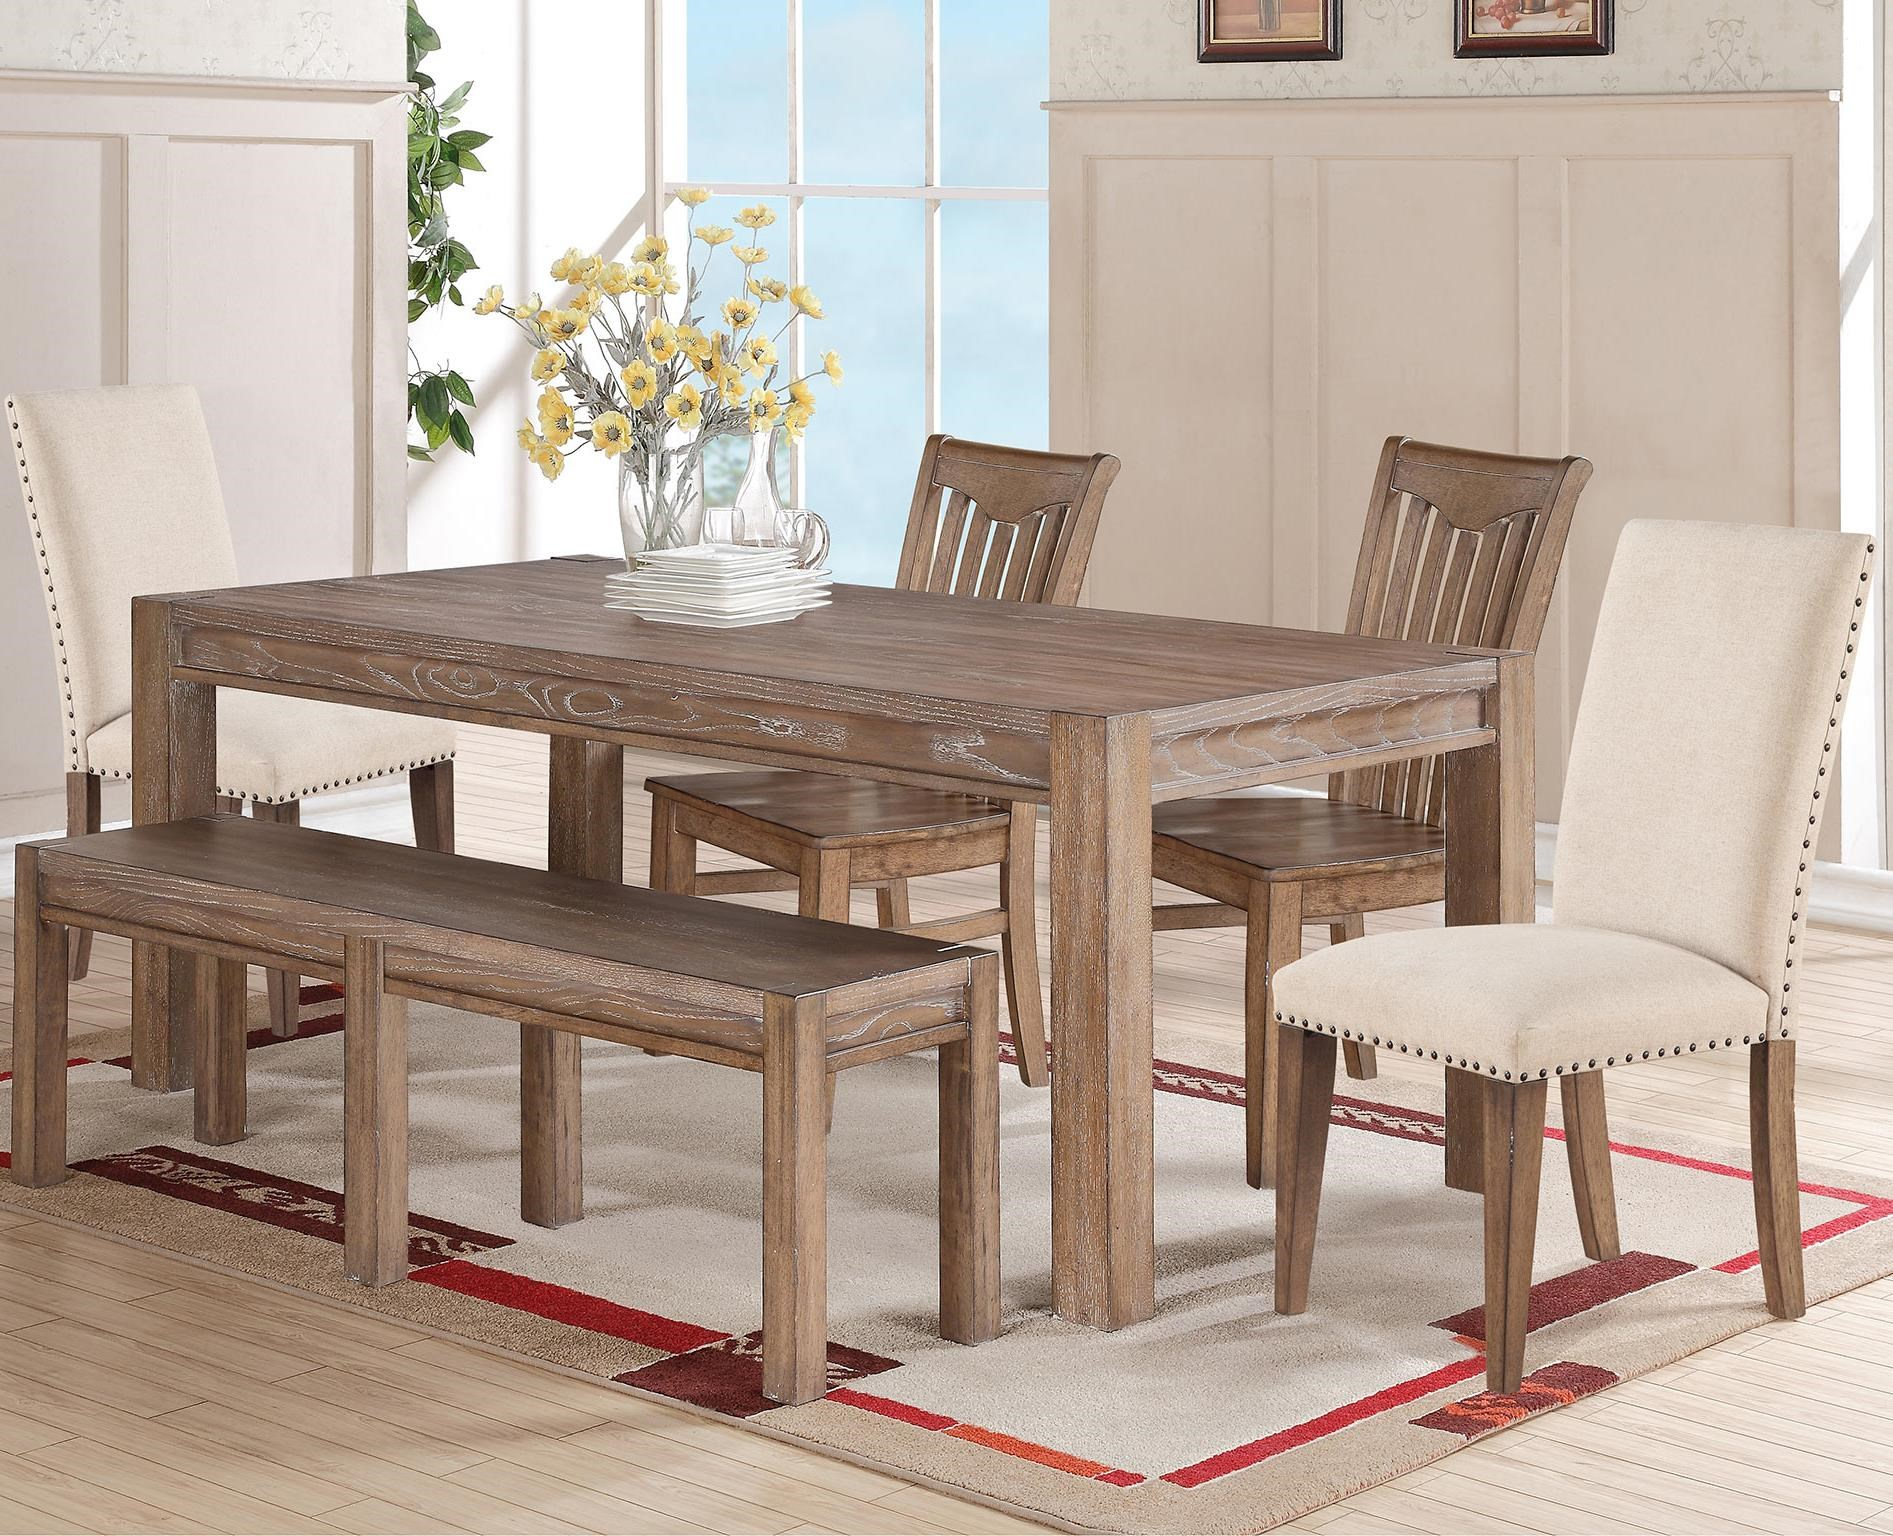 6 Piece Dining Set With Bench Signature Design By Ashley Trishley